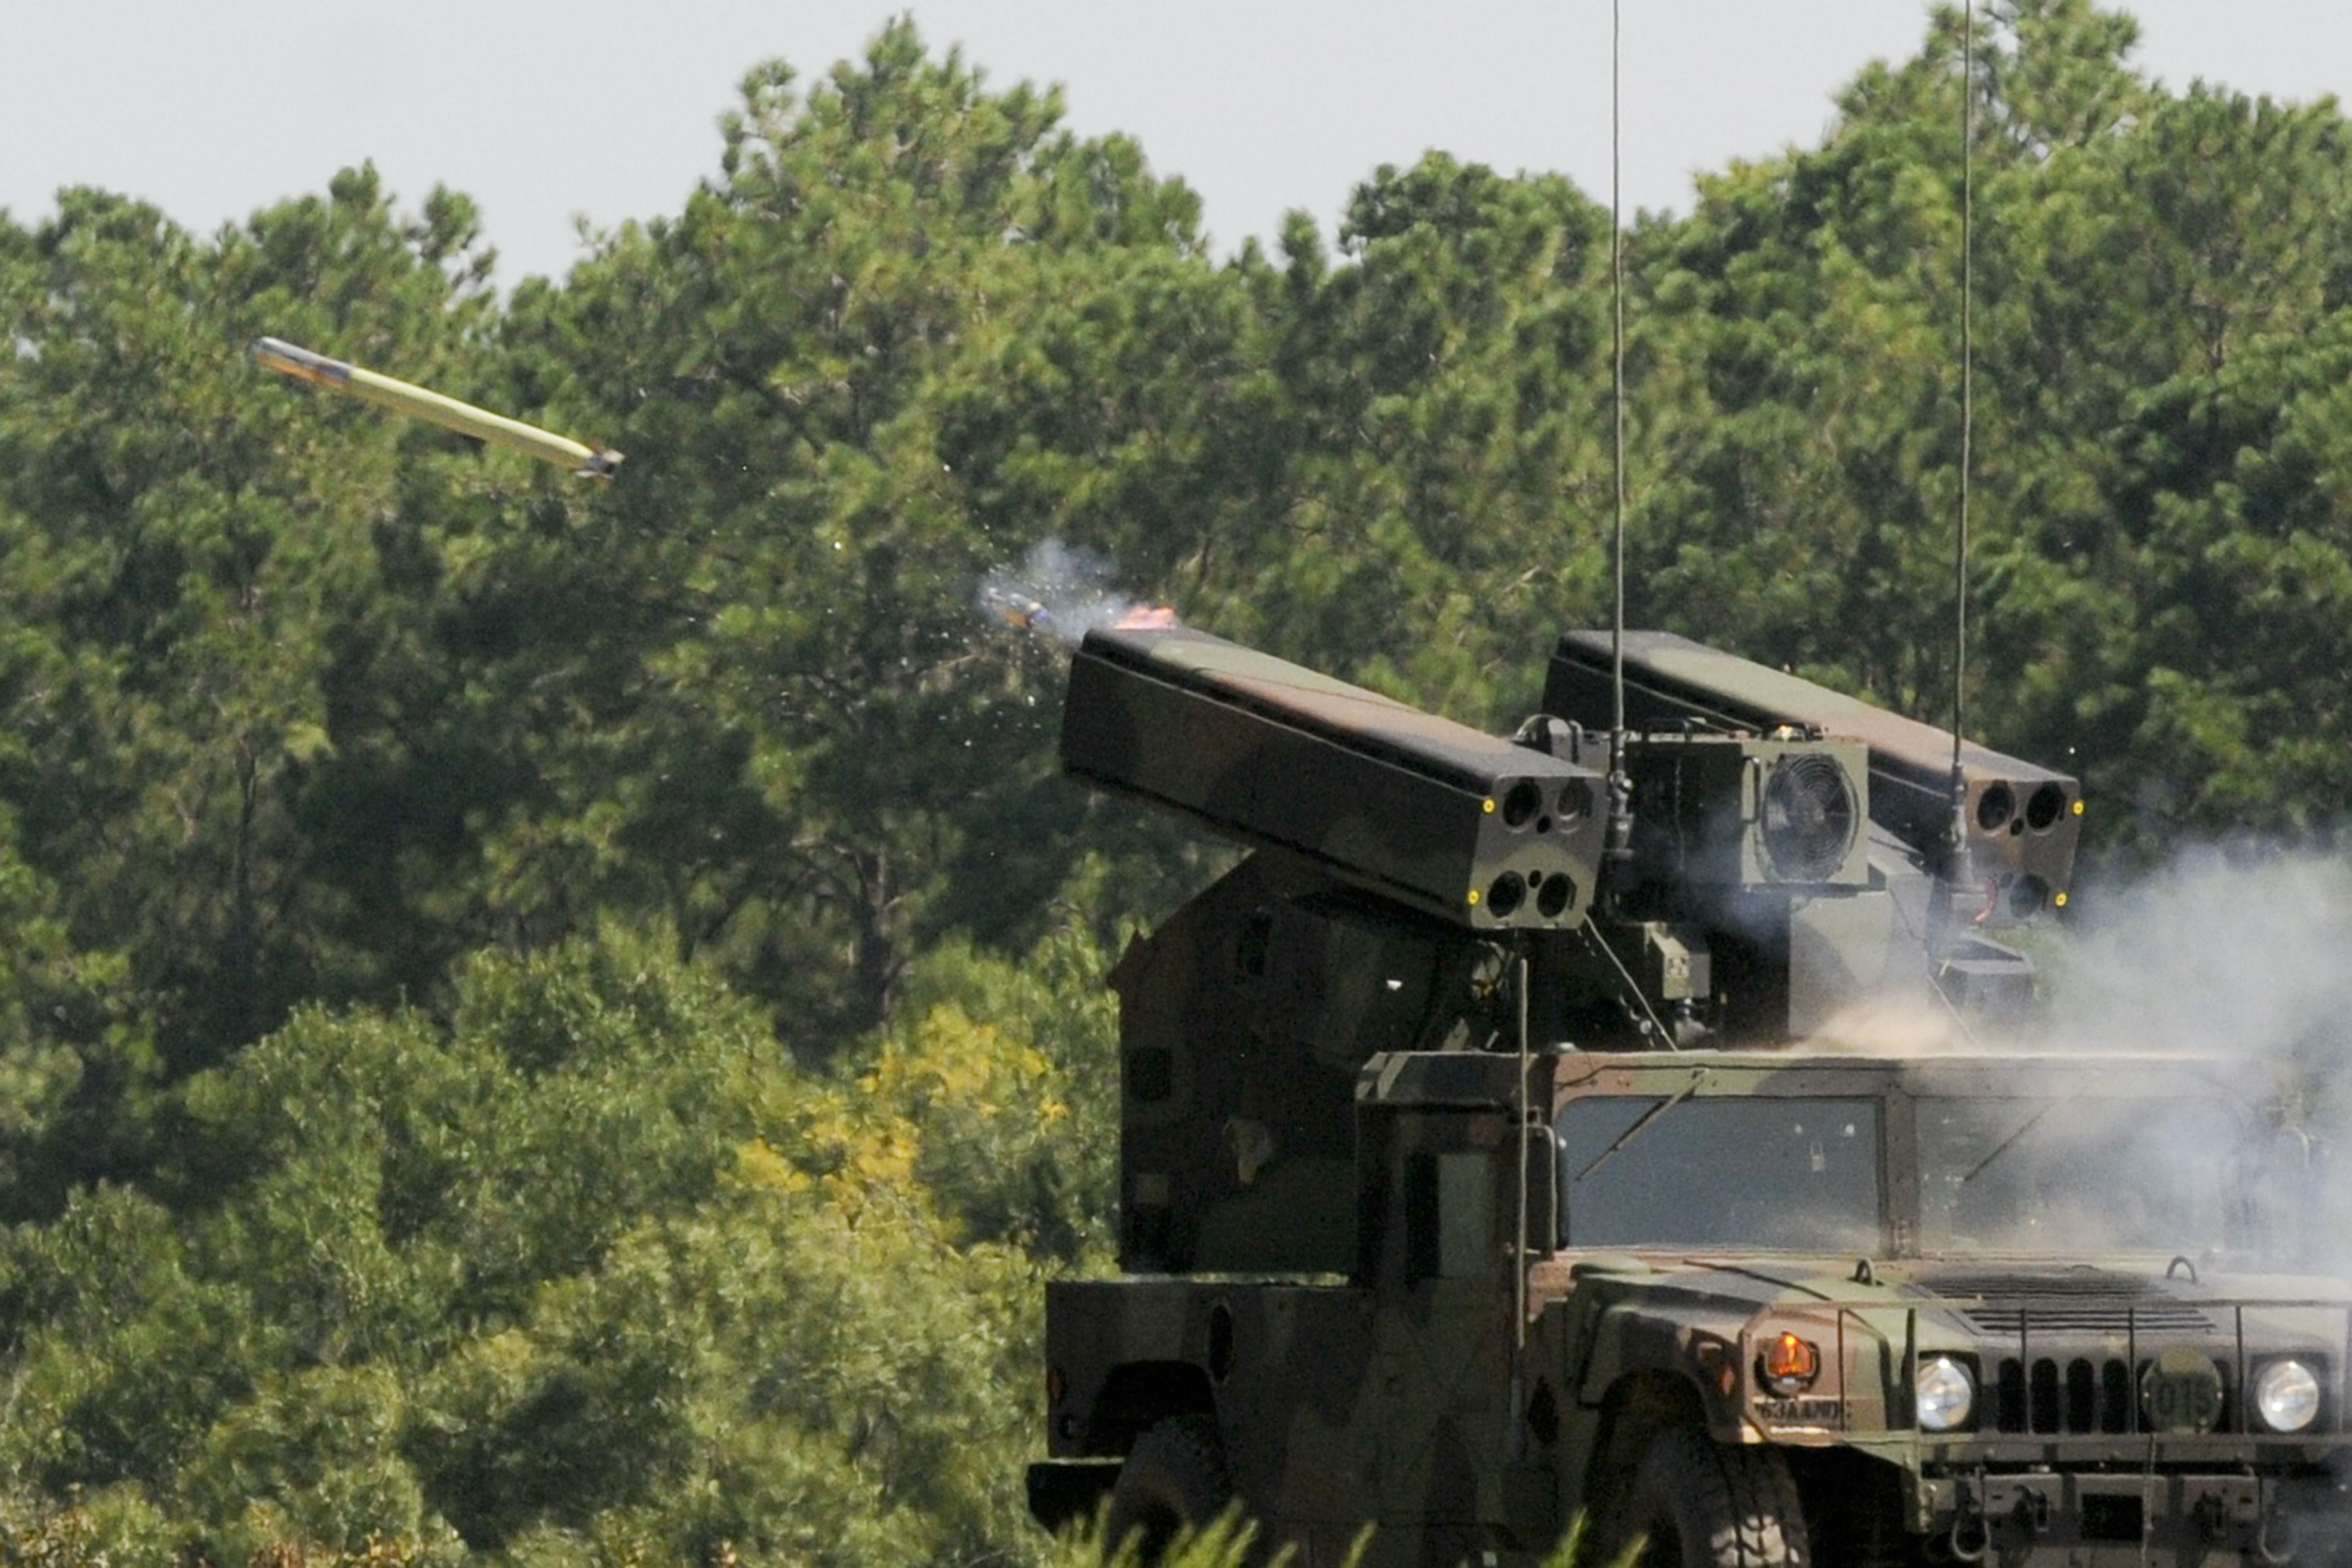 Yesterday's Washington D.C. Air Alert Revealed a Secret Missile Battery